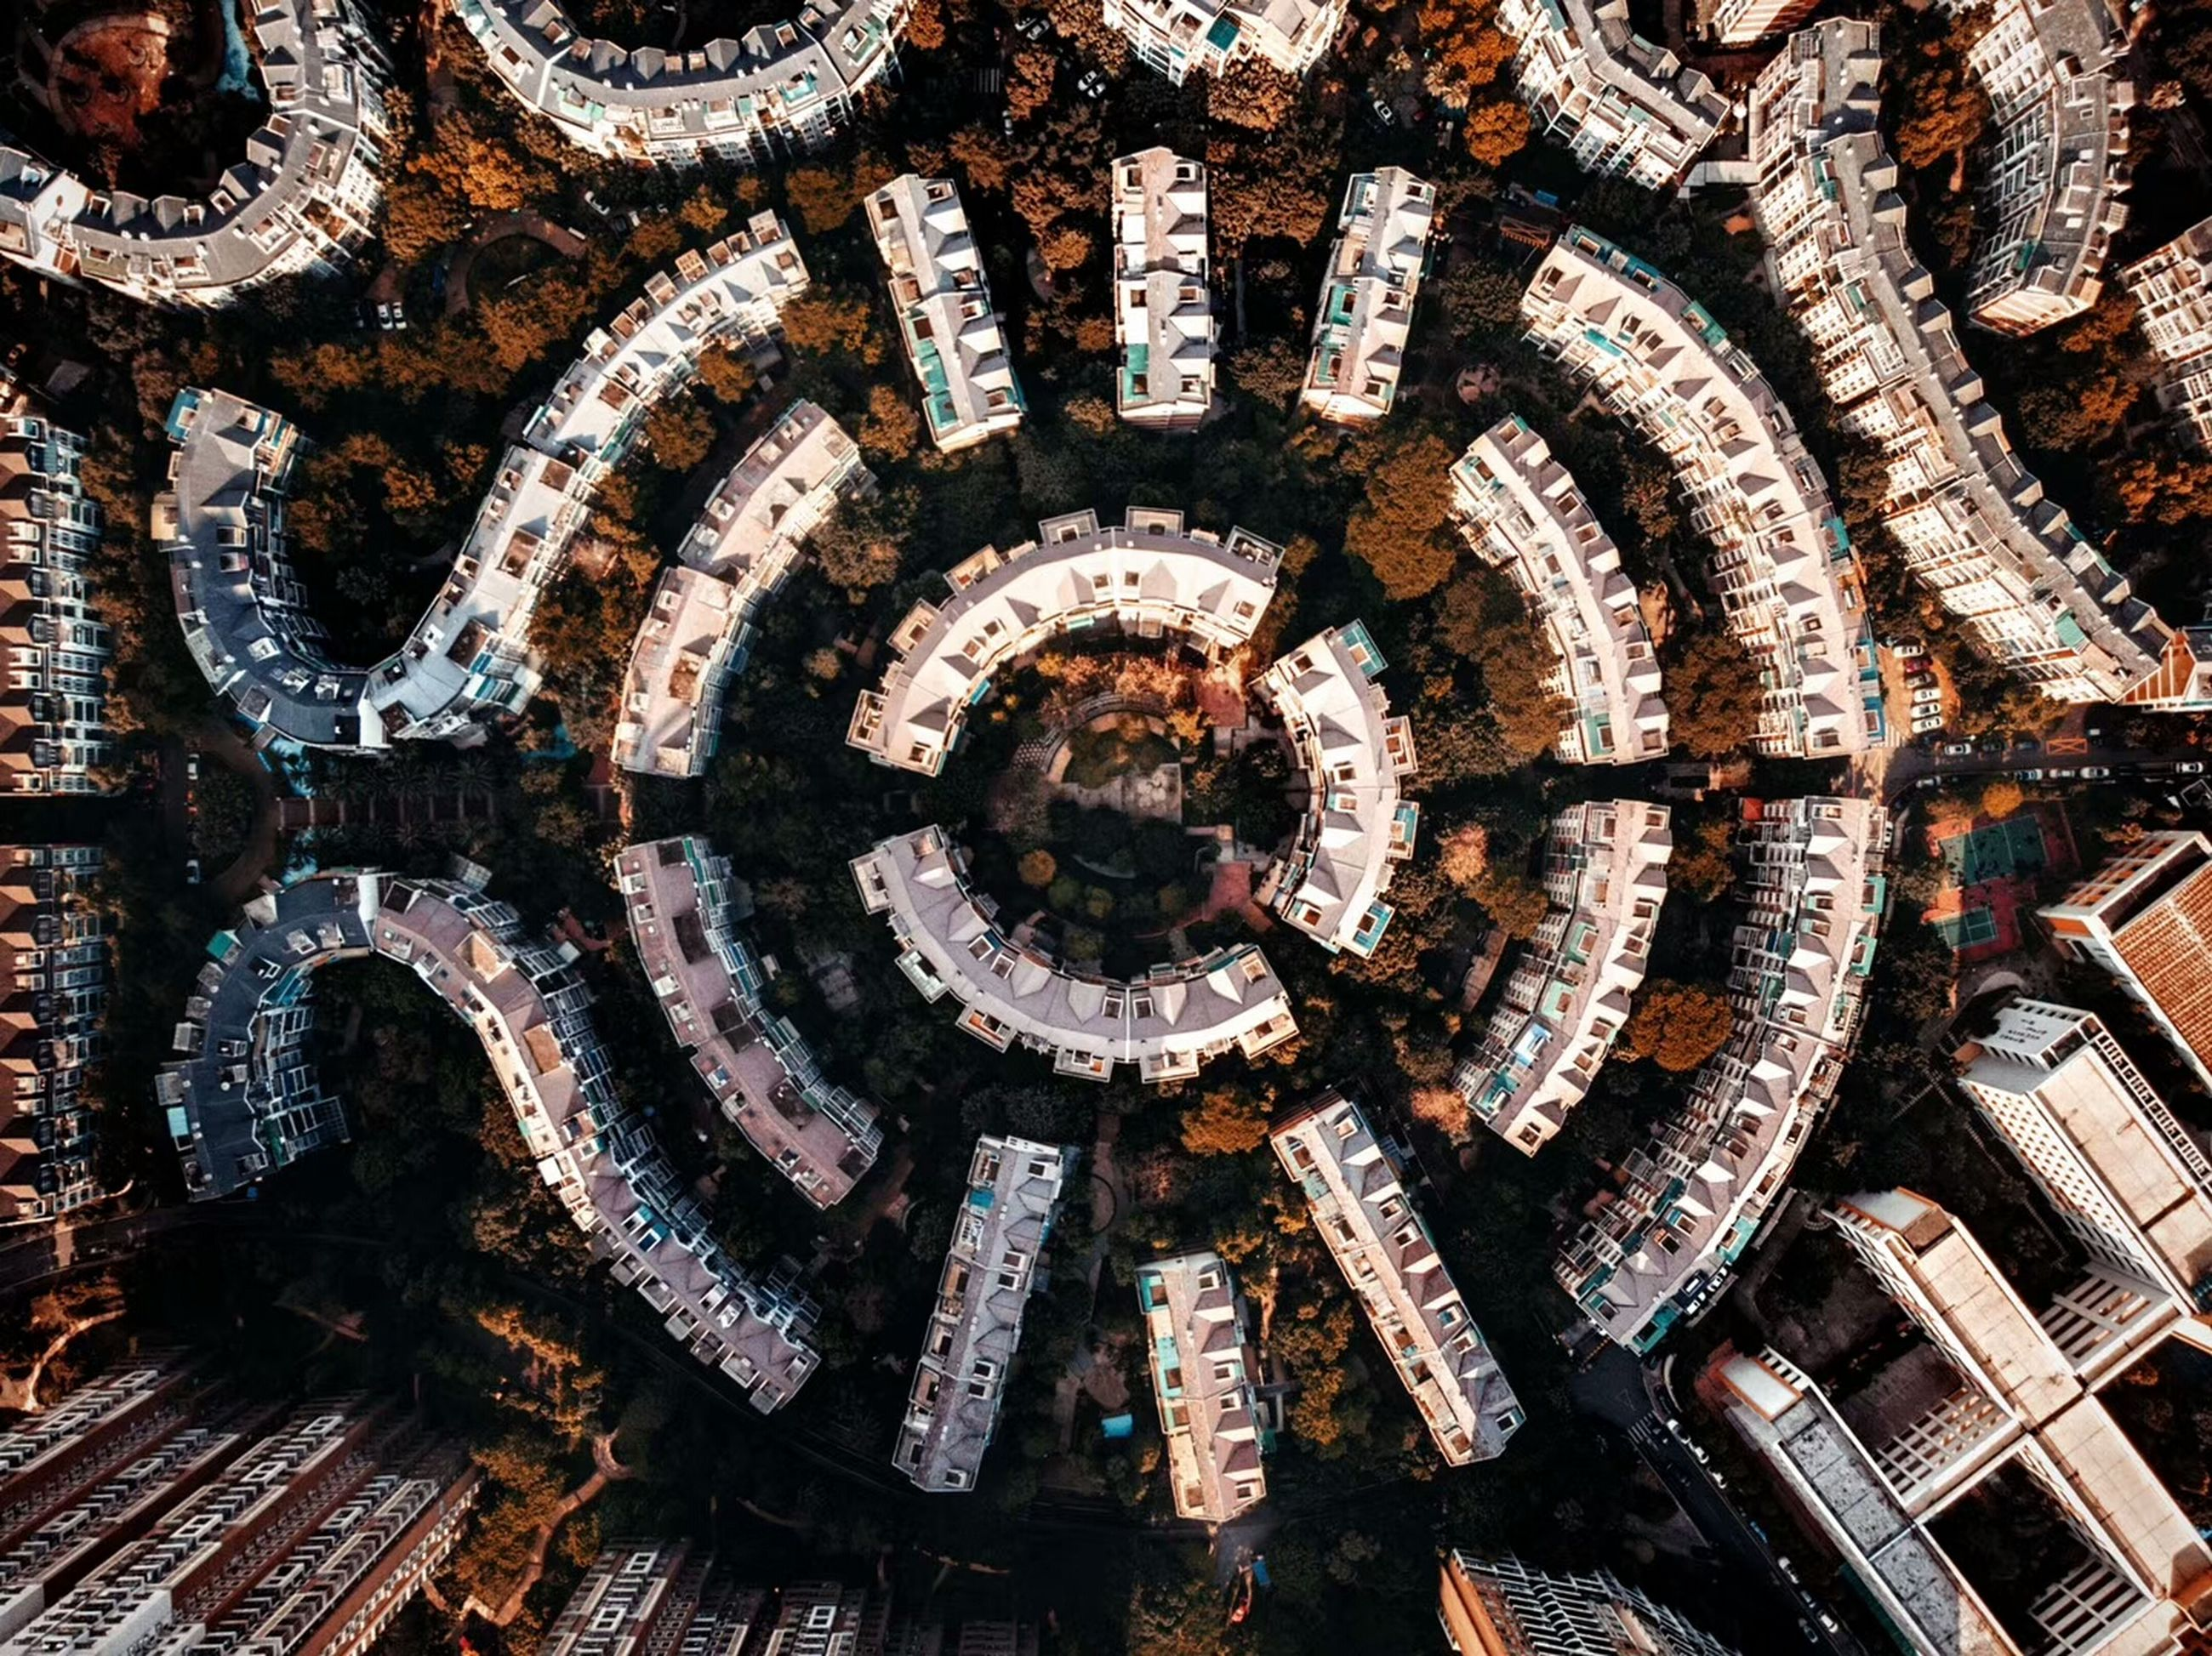 backgrounds, no people, full frame, architecture, pattern, shape, geometric shape, circle, day, indoors, directly above, built structure, directly below, travel destinations, wood - material, close-up, communication, old, wheel, digital composite